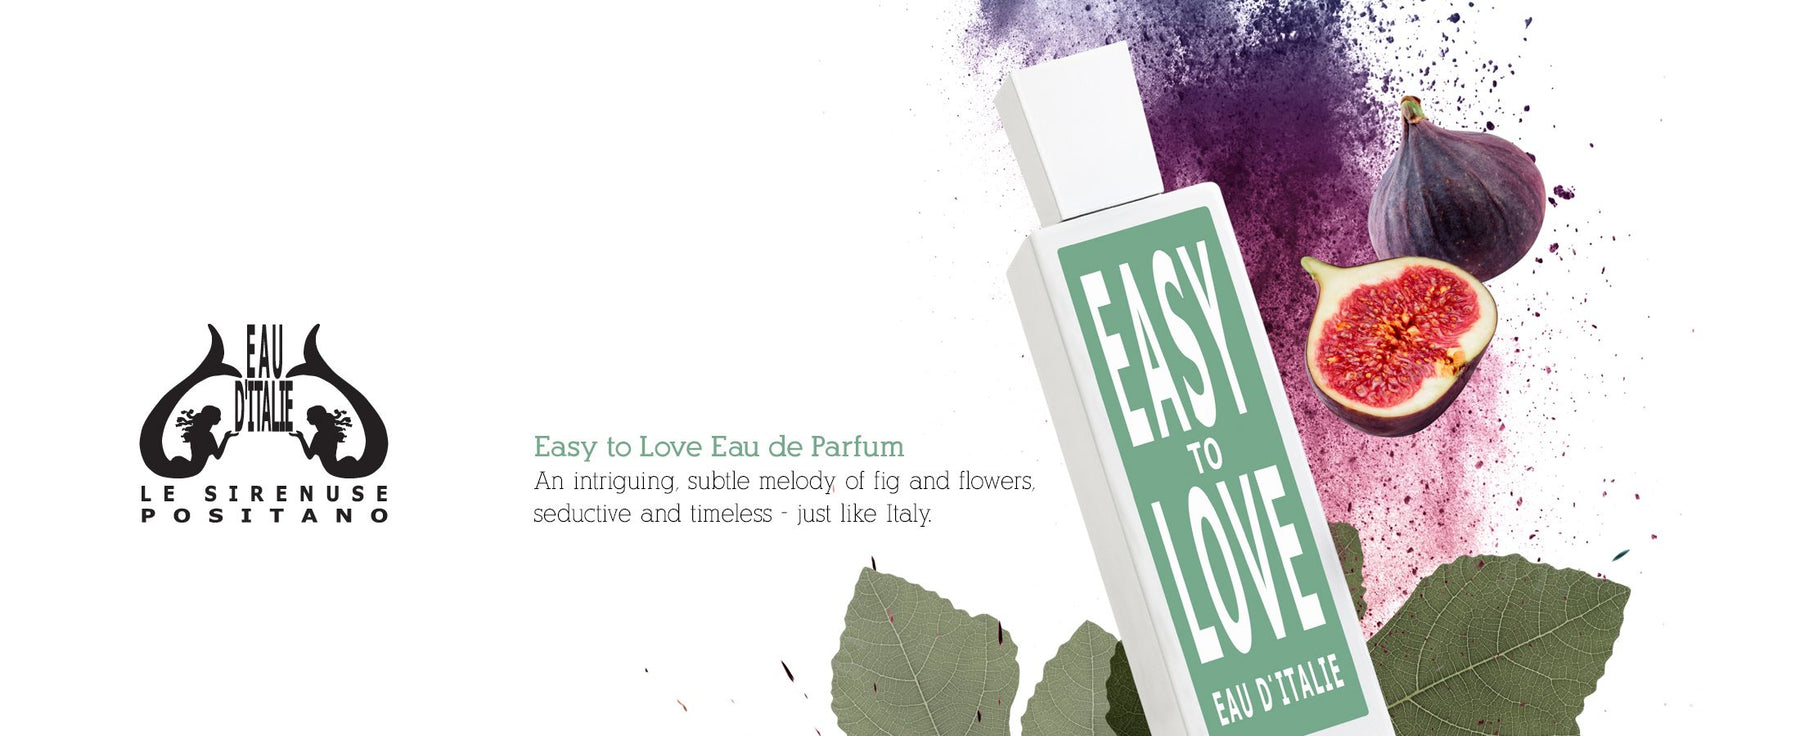 Eau d'Italie Le Sirenuse Positano - Easy to Love Eau de Parfum. An intriguing, subtle melody of fig and flowers, seductive and timeless - just like Italy. Bottle and fig sliced with green leaves in the background.